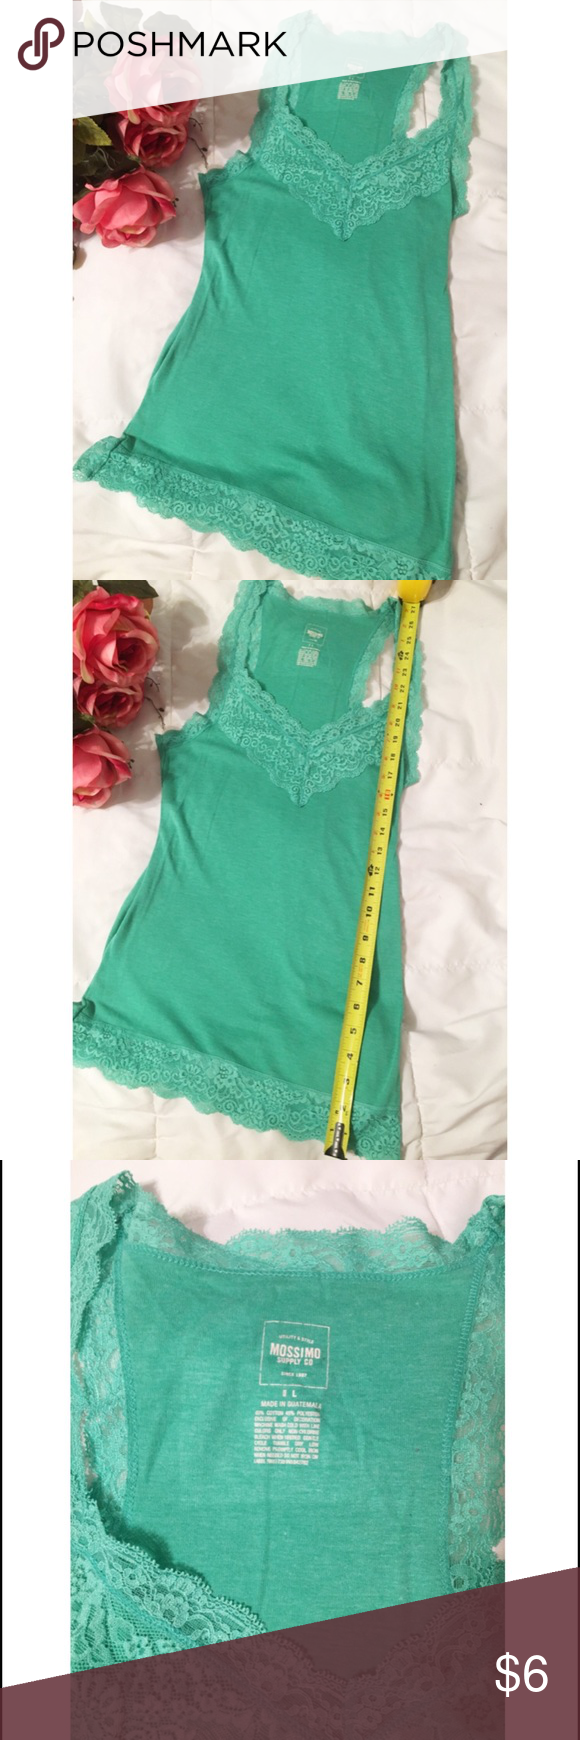 """Spring Top with Lace Trim 🌸 Perfect for Spring!🌸🌺🌷Mossimo Top size large, length 27inches---it's a pretty long torso for me and I'm about 5'2"""". Great color, no snags in lace. Very good condition just making room for more stuff!!! 💚💛 Mossimo Supply Co. Tops Tank Tops"""